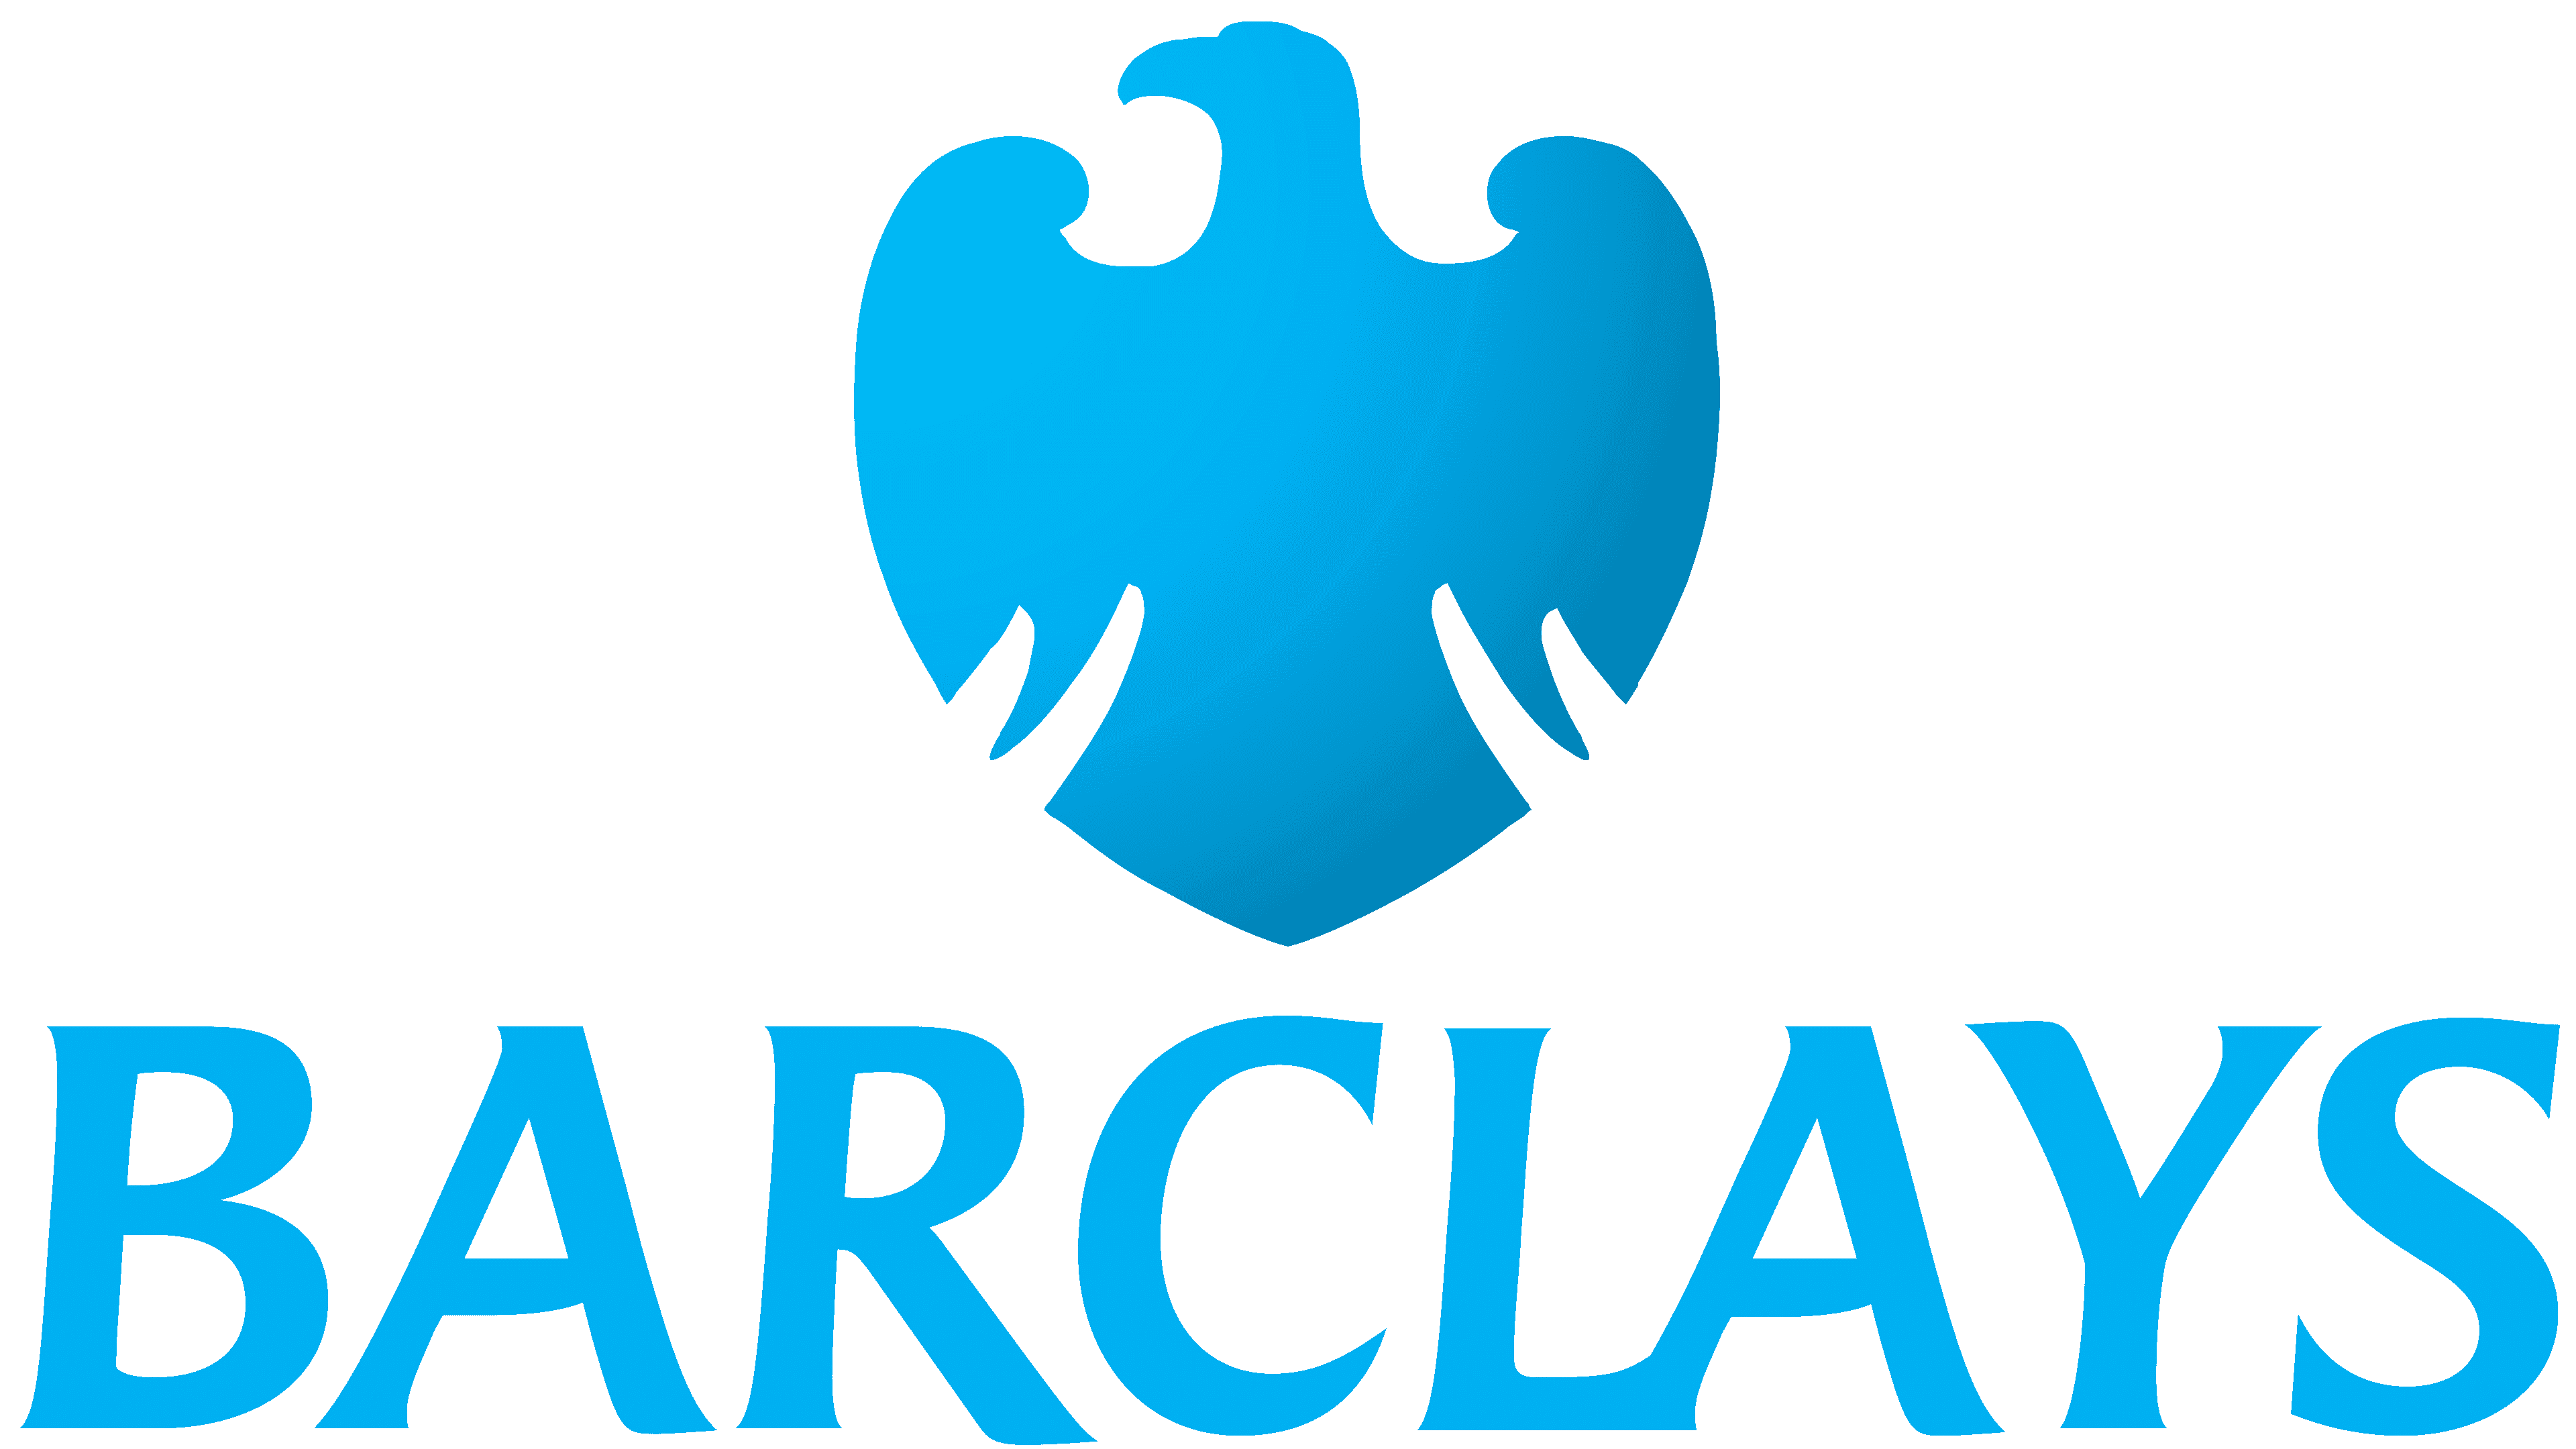 Barclays logo and symbol, meaning, history, PNG